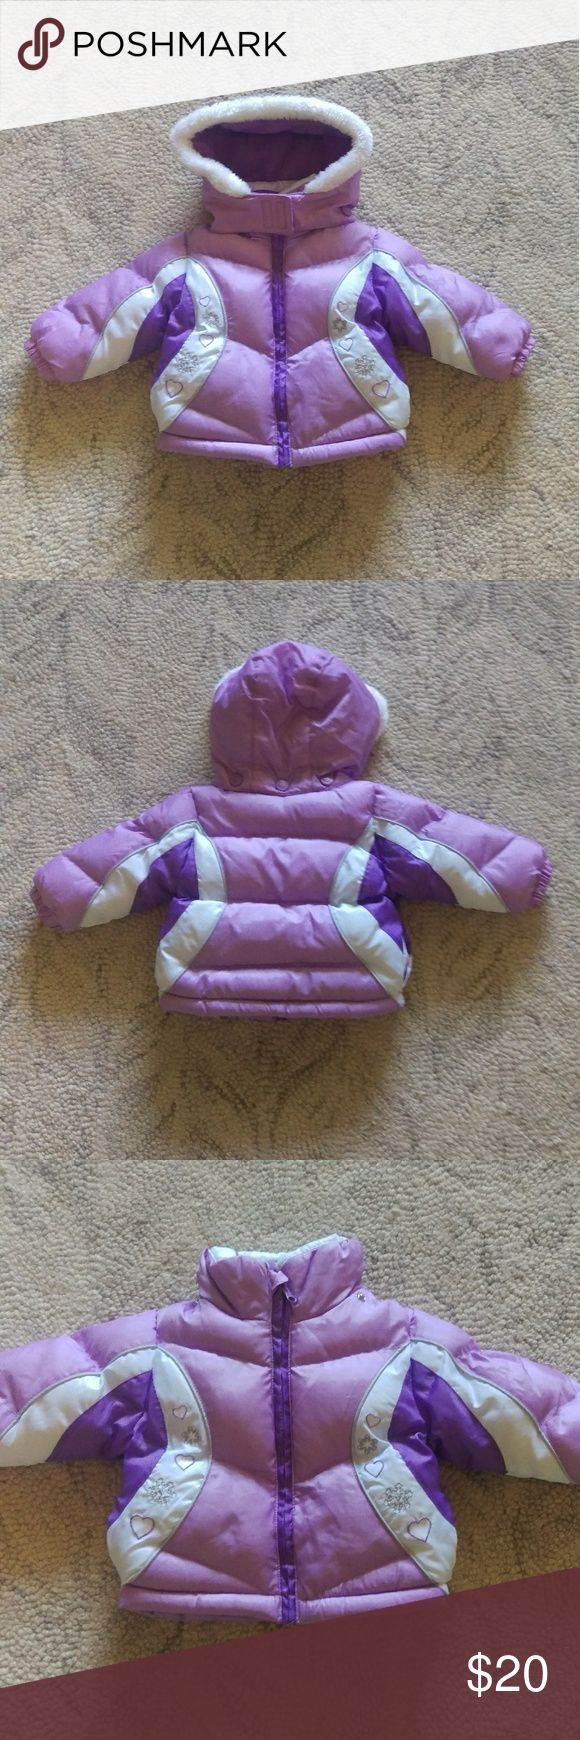 London Fog Baby Puffer Coat Purple London Fog baby fleece lined puffer coat. The hood is detachable and the inside of the jacket and hood are lined with fleece. VERY gently used. London Fog Jackets & Coats Puffers